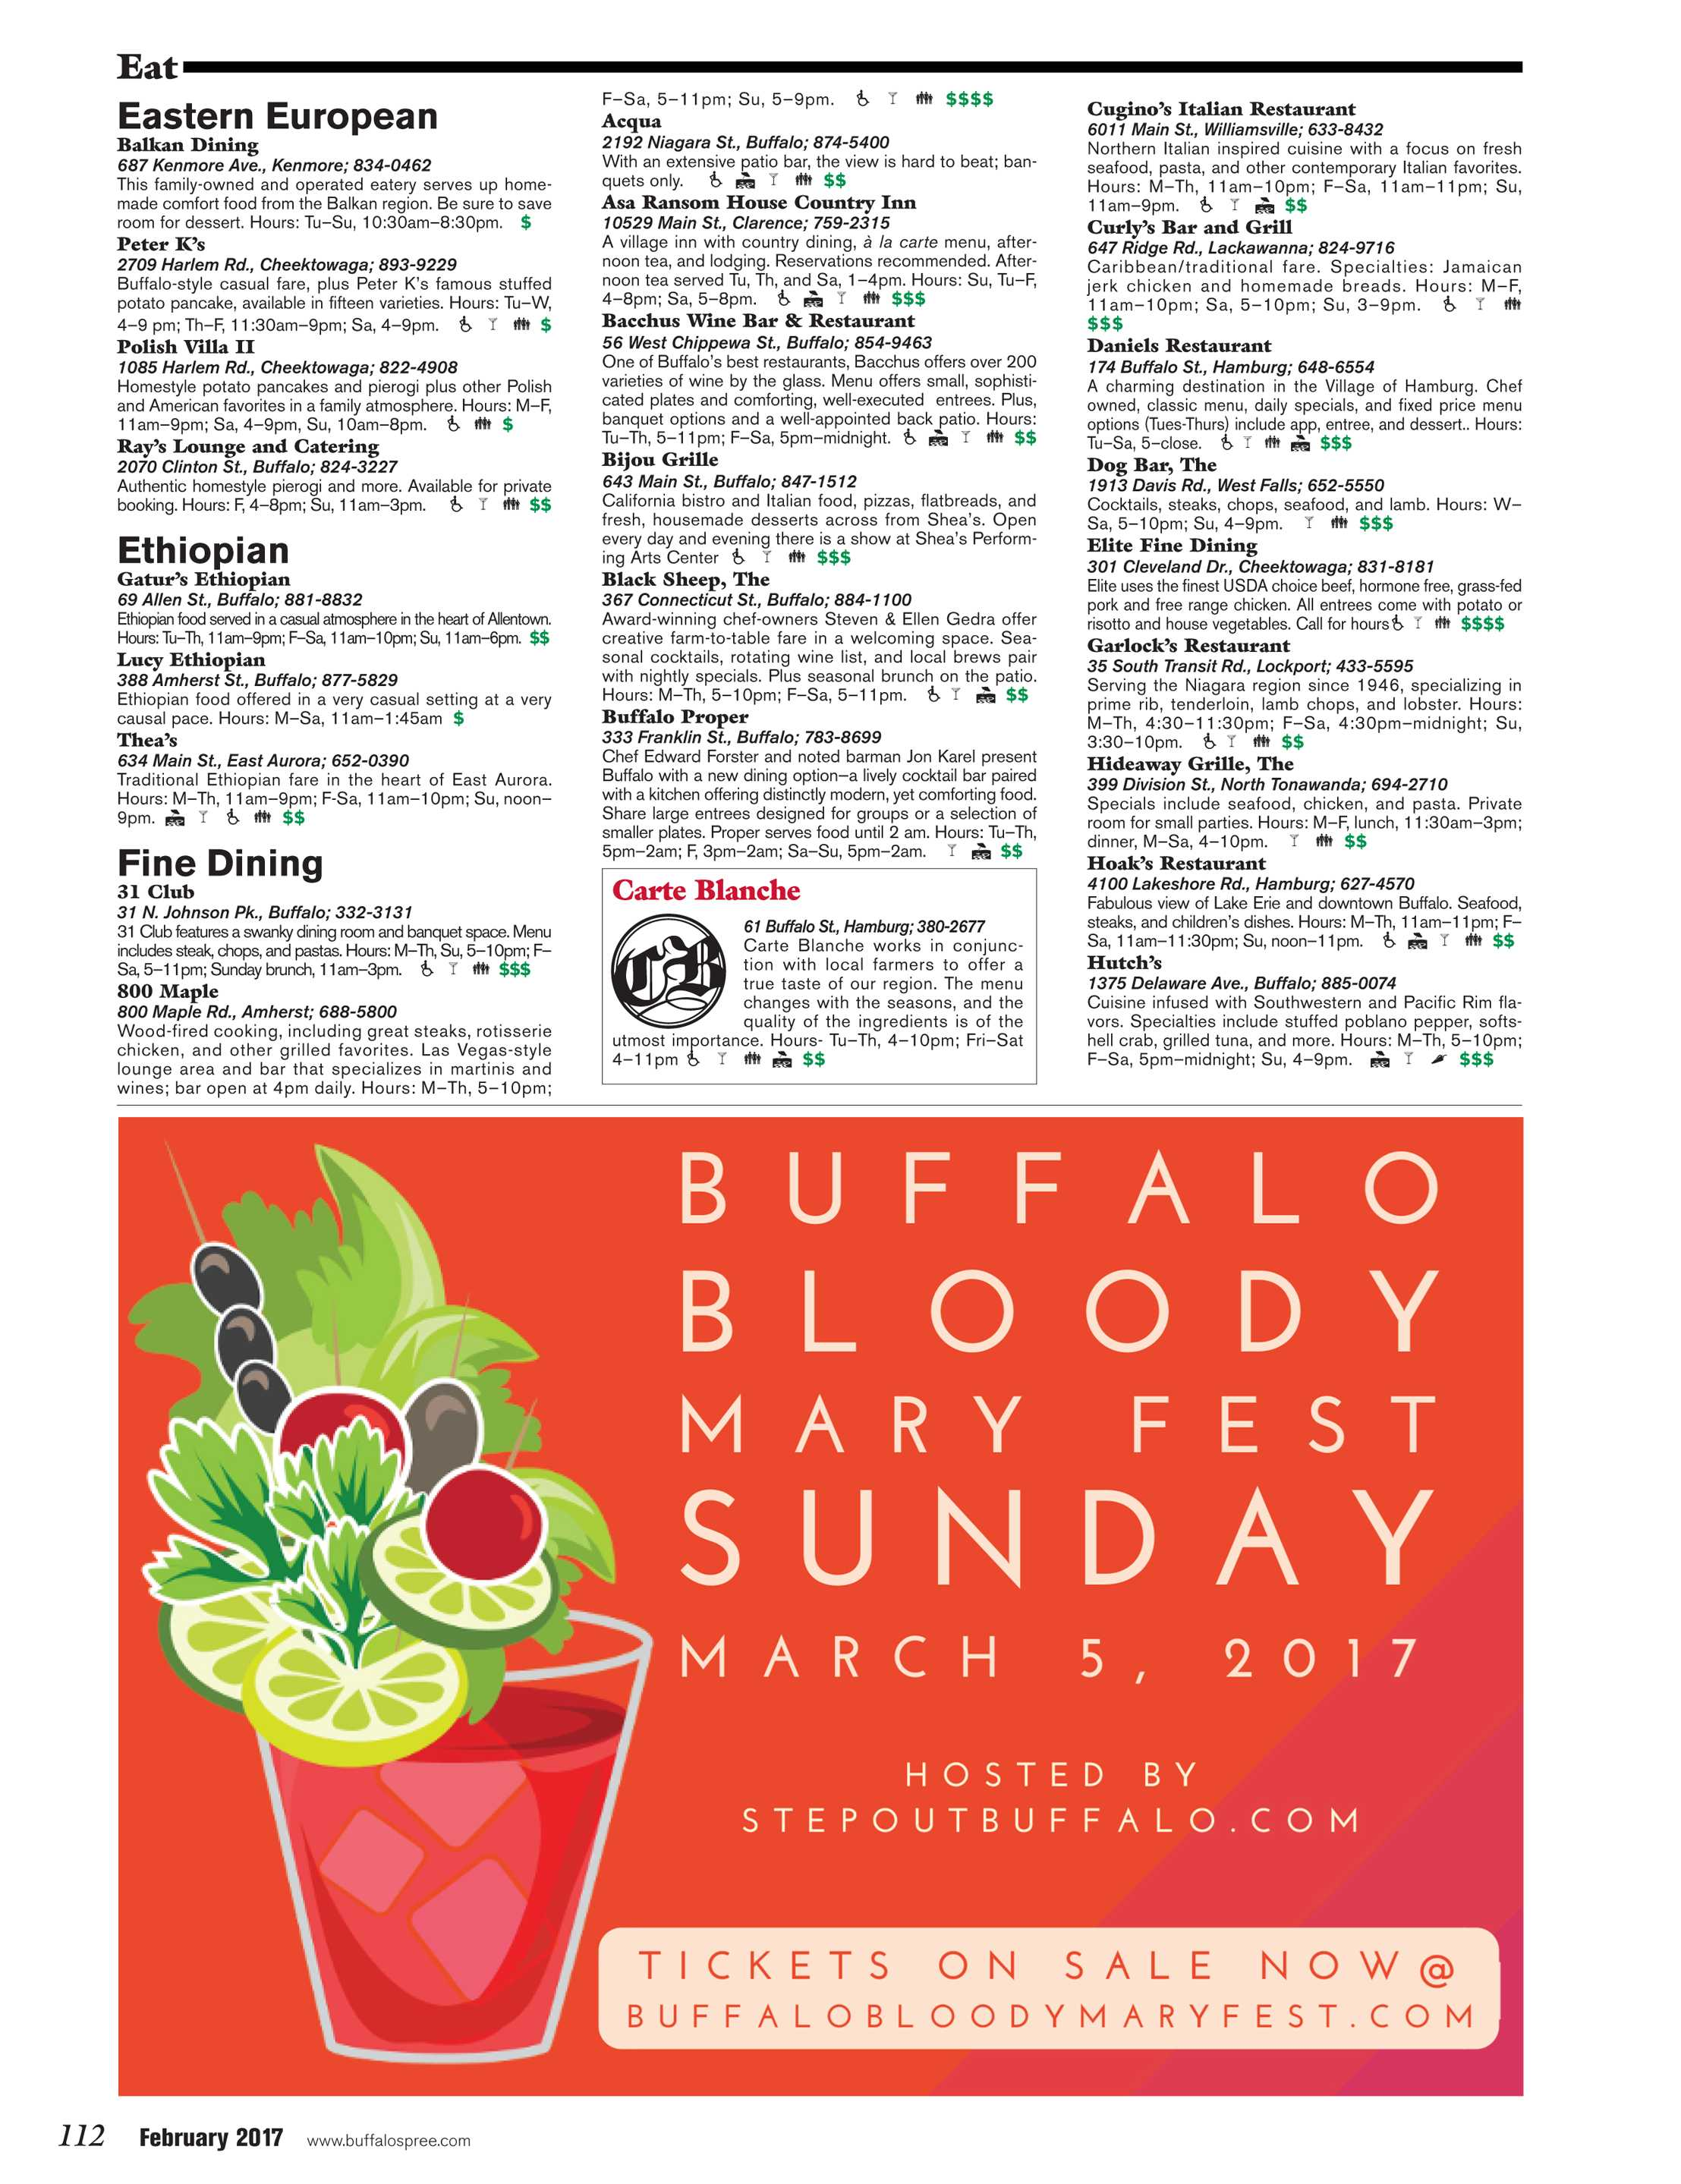 Carte Blanche Gourmet Tacos Buffalo Spree February 2017 Page 112